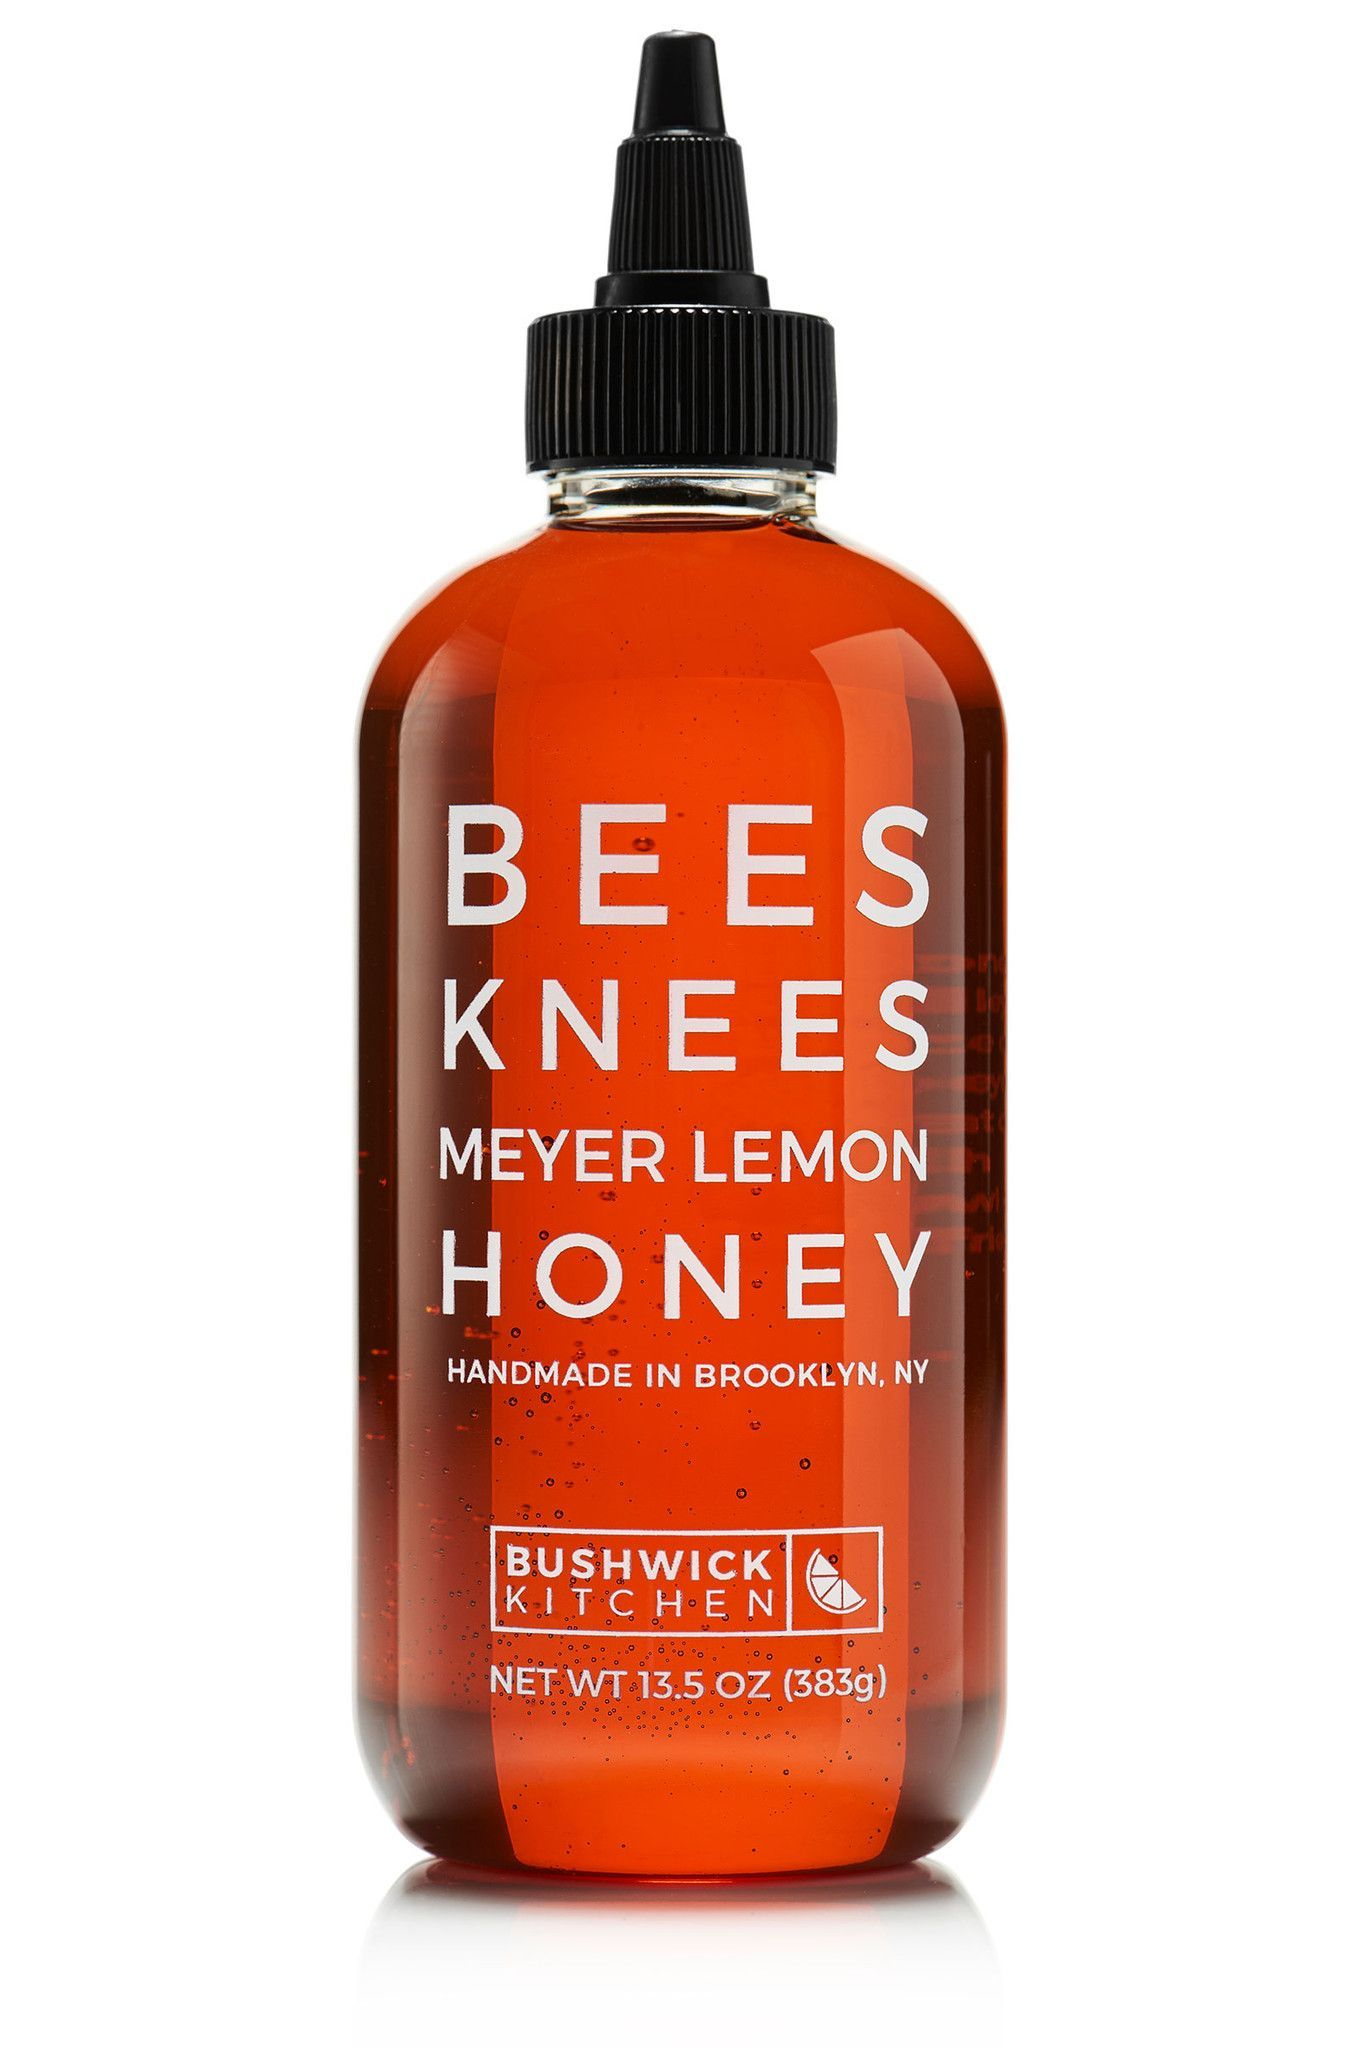 Bees Knees Meyer Lemon Honey Bees Knees Orange Blossom Honey Meyer Lemon